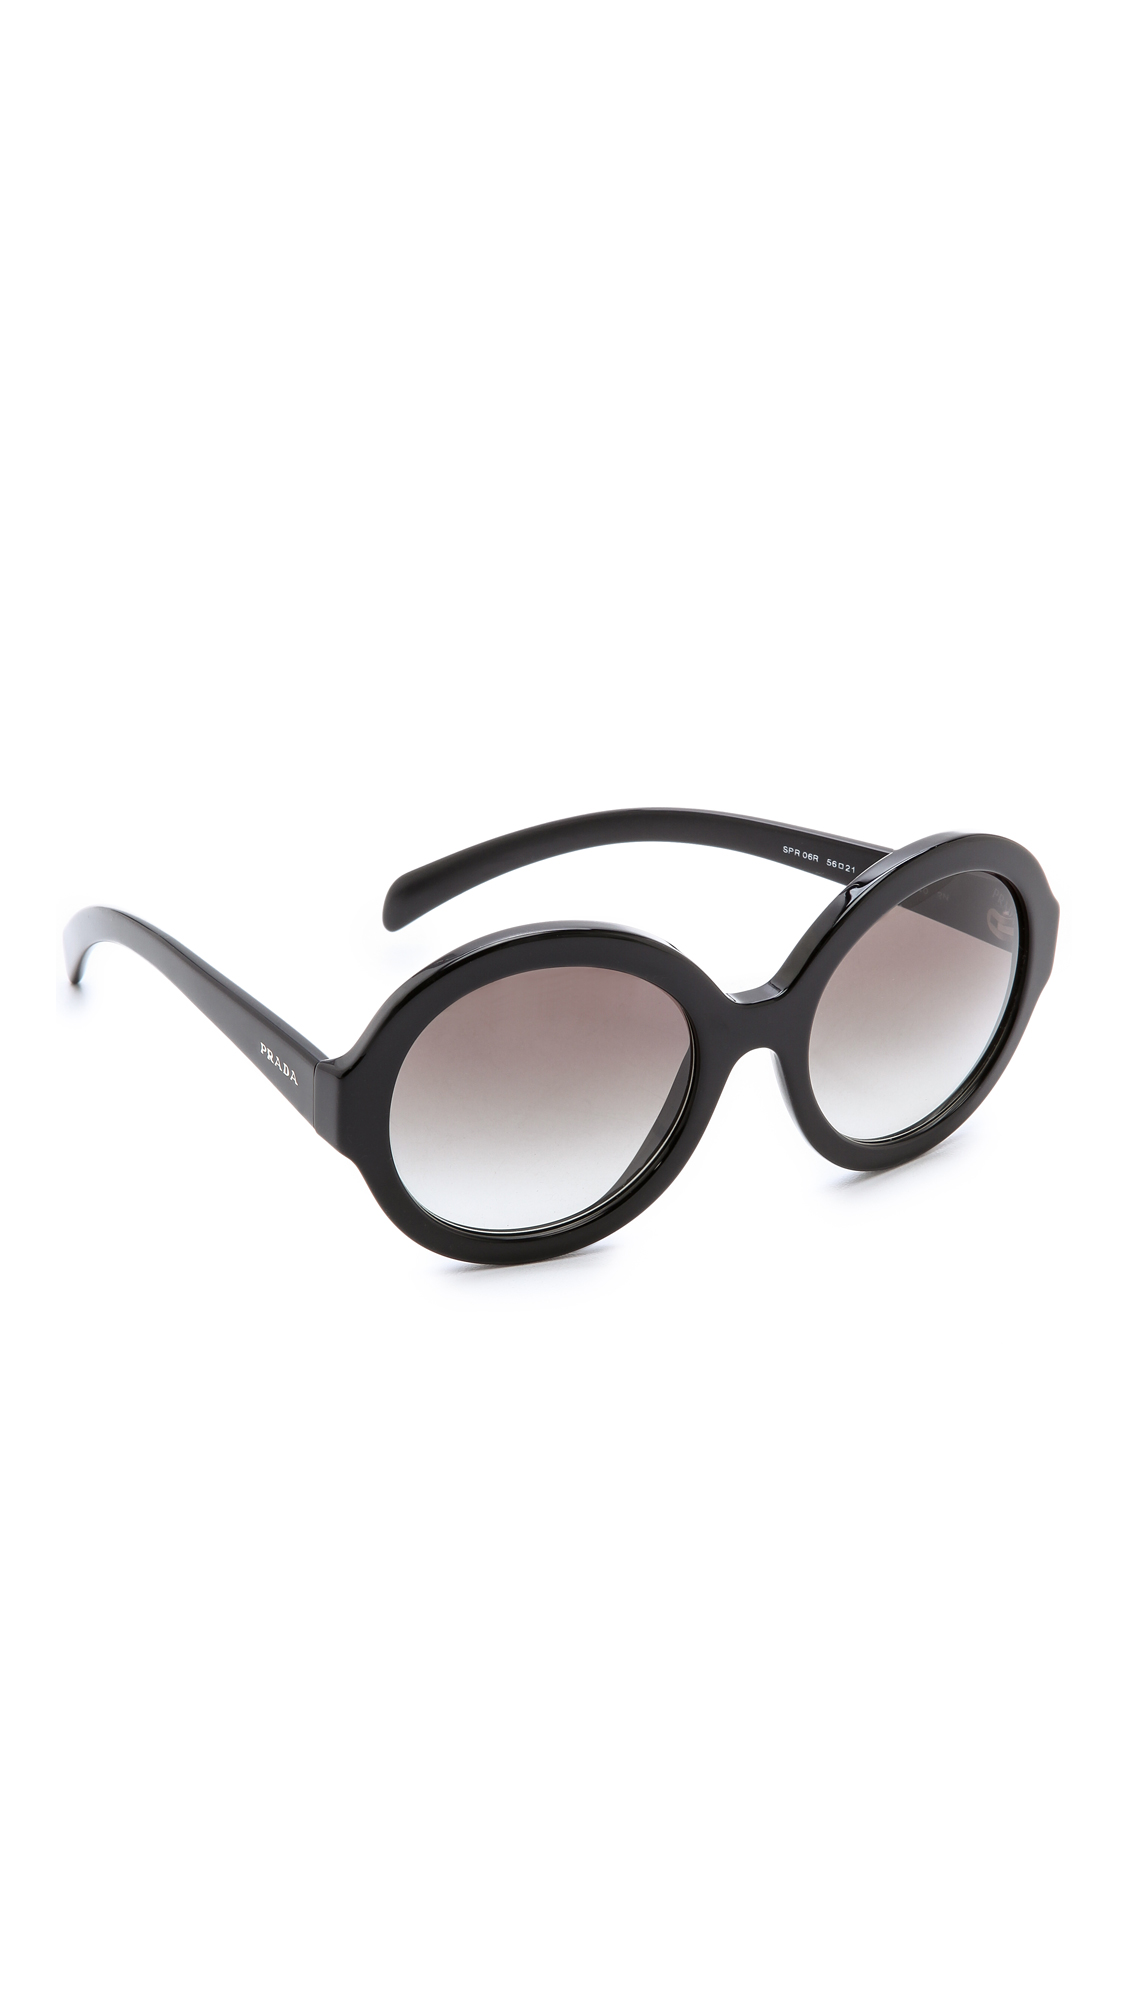 Prada Rounded Sunglasses - Black/Grey Gradient at Shopbop